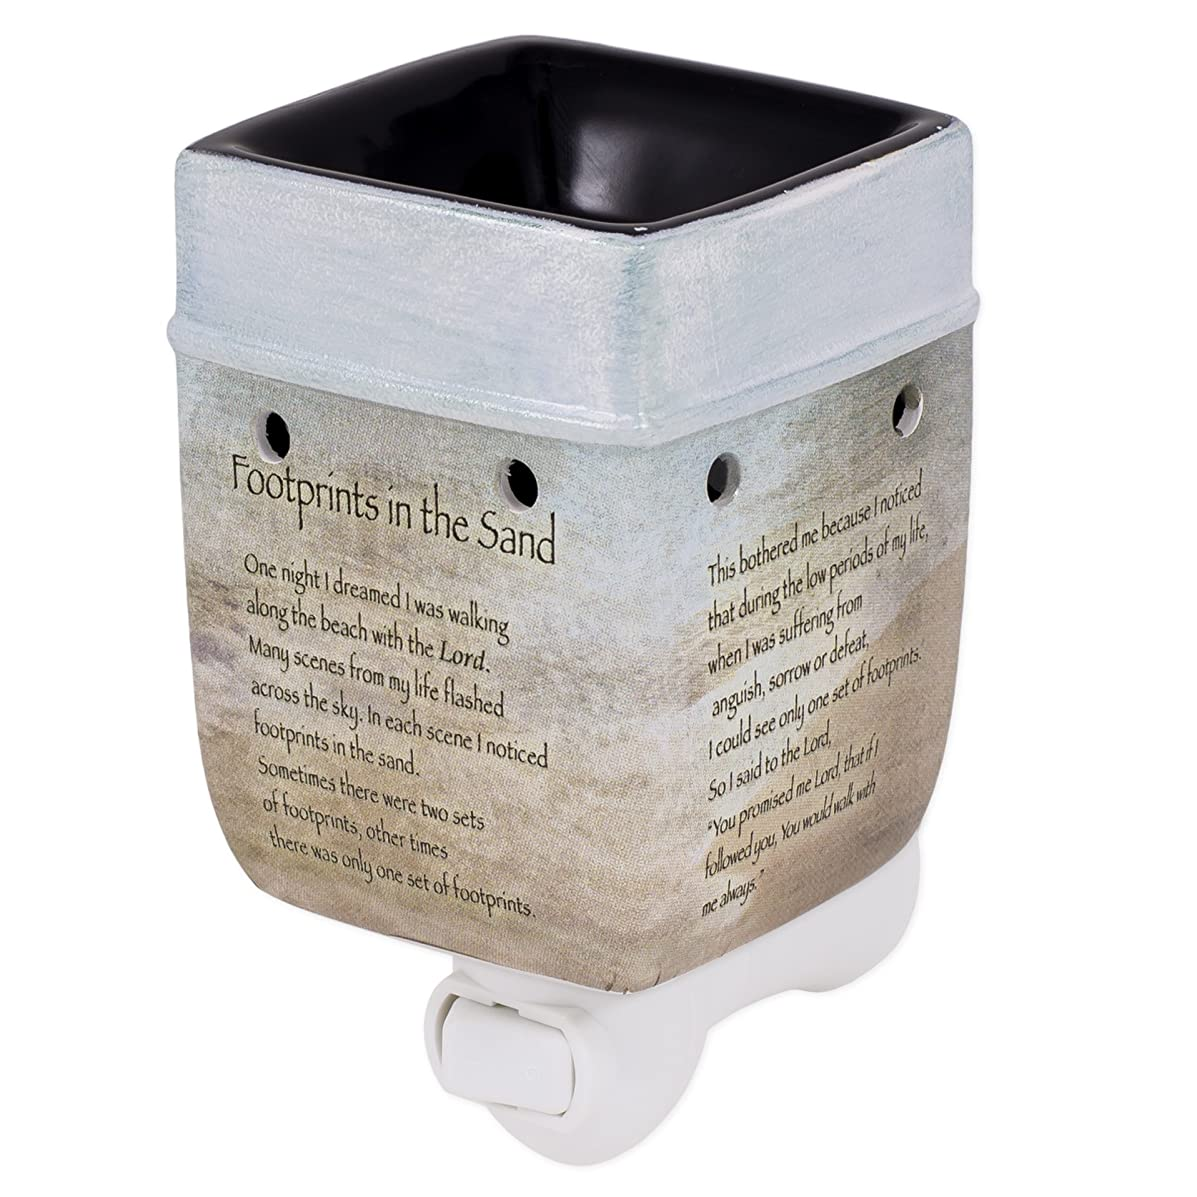 Elanze Designs Footprints in The Sand Ceramic Stoneware Electric Plug-in Outlet Wax and Oil Warmer